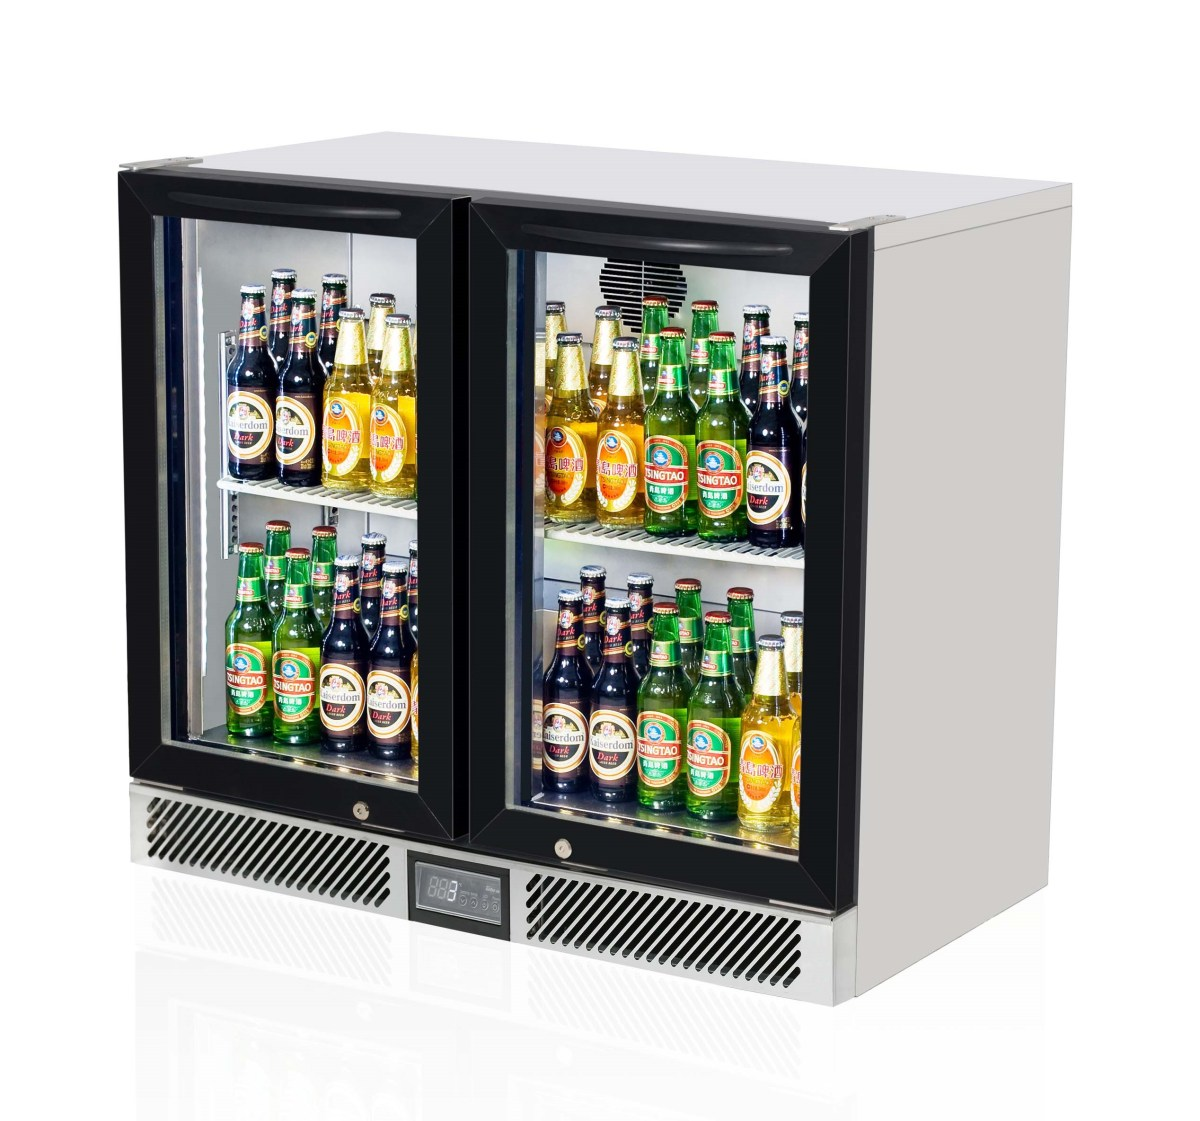 Fridge Sales Melbourne Sb92gblk Melbourne Refrigeration And Catering Equipment